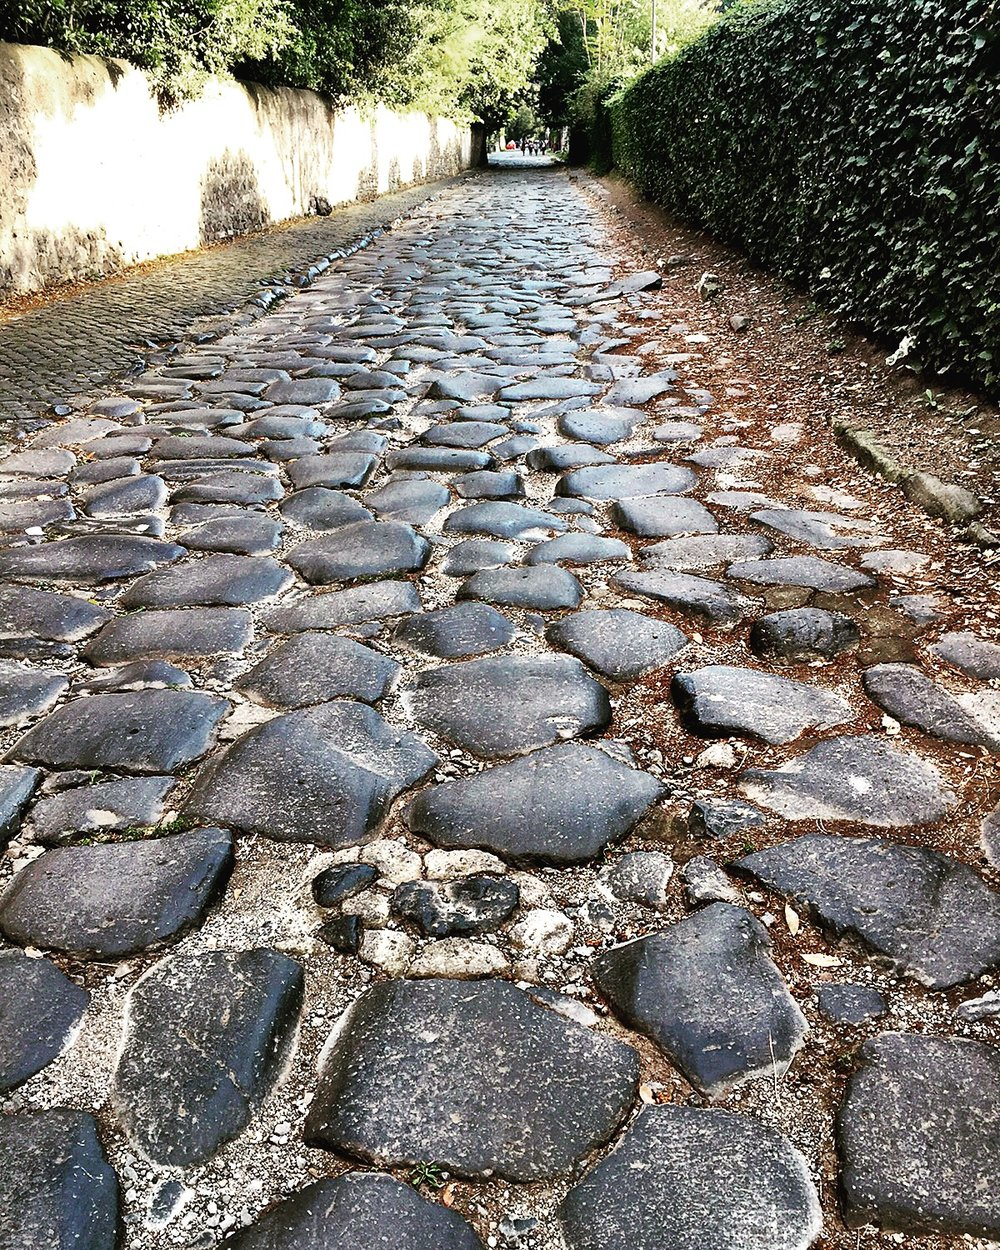 ROMAN COMMUTE, OR THE MARATHON  (A FAVORITE FROM THE BLOG)